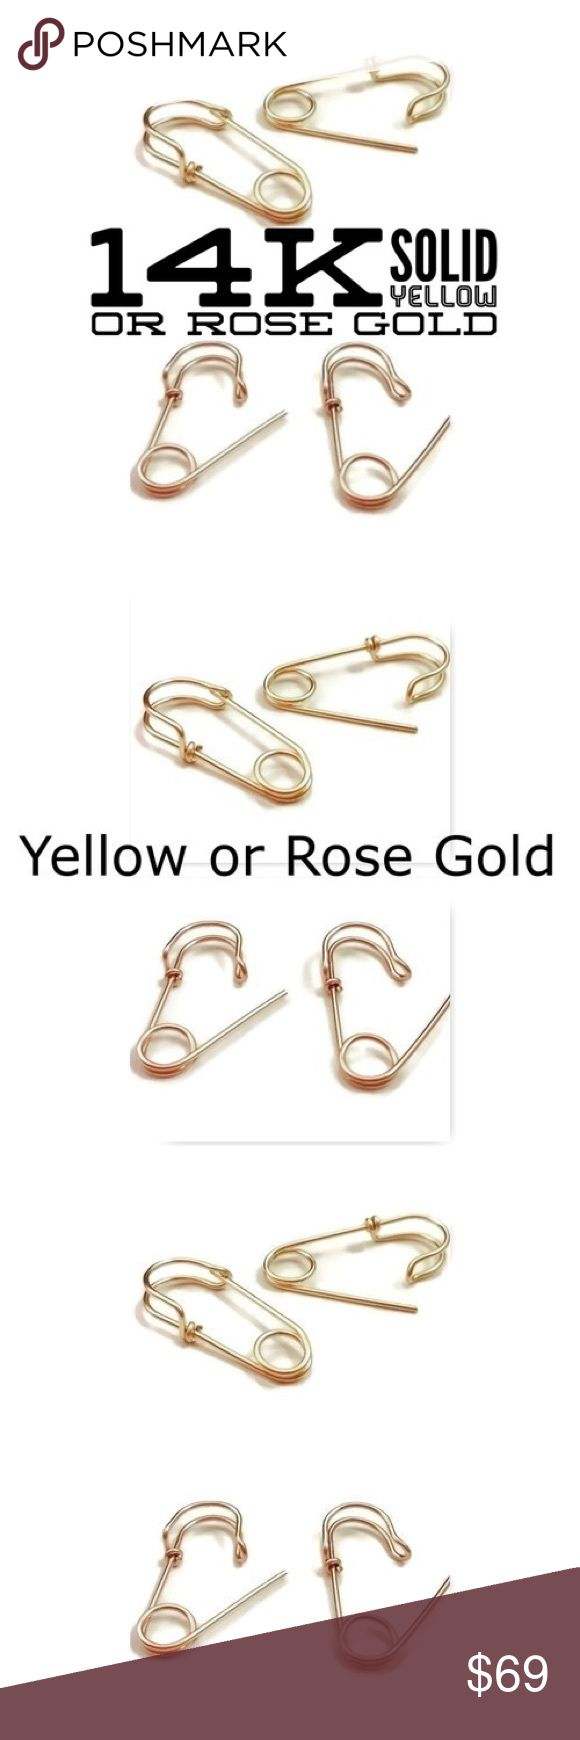 """❗️sale❗️14k Rose/Yellow Gold Safety Pin Earrings A pair of Harley quinn inspired solid 14k yellow or rose gold safety pin earrings. Hallmarked 14k. Available in lengths of either 3/4"""" or 1"""". nejd Jewelry Earrings"""